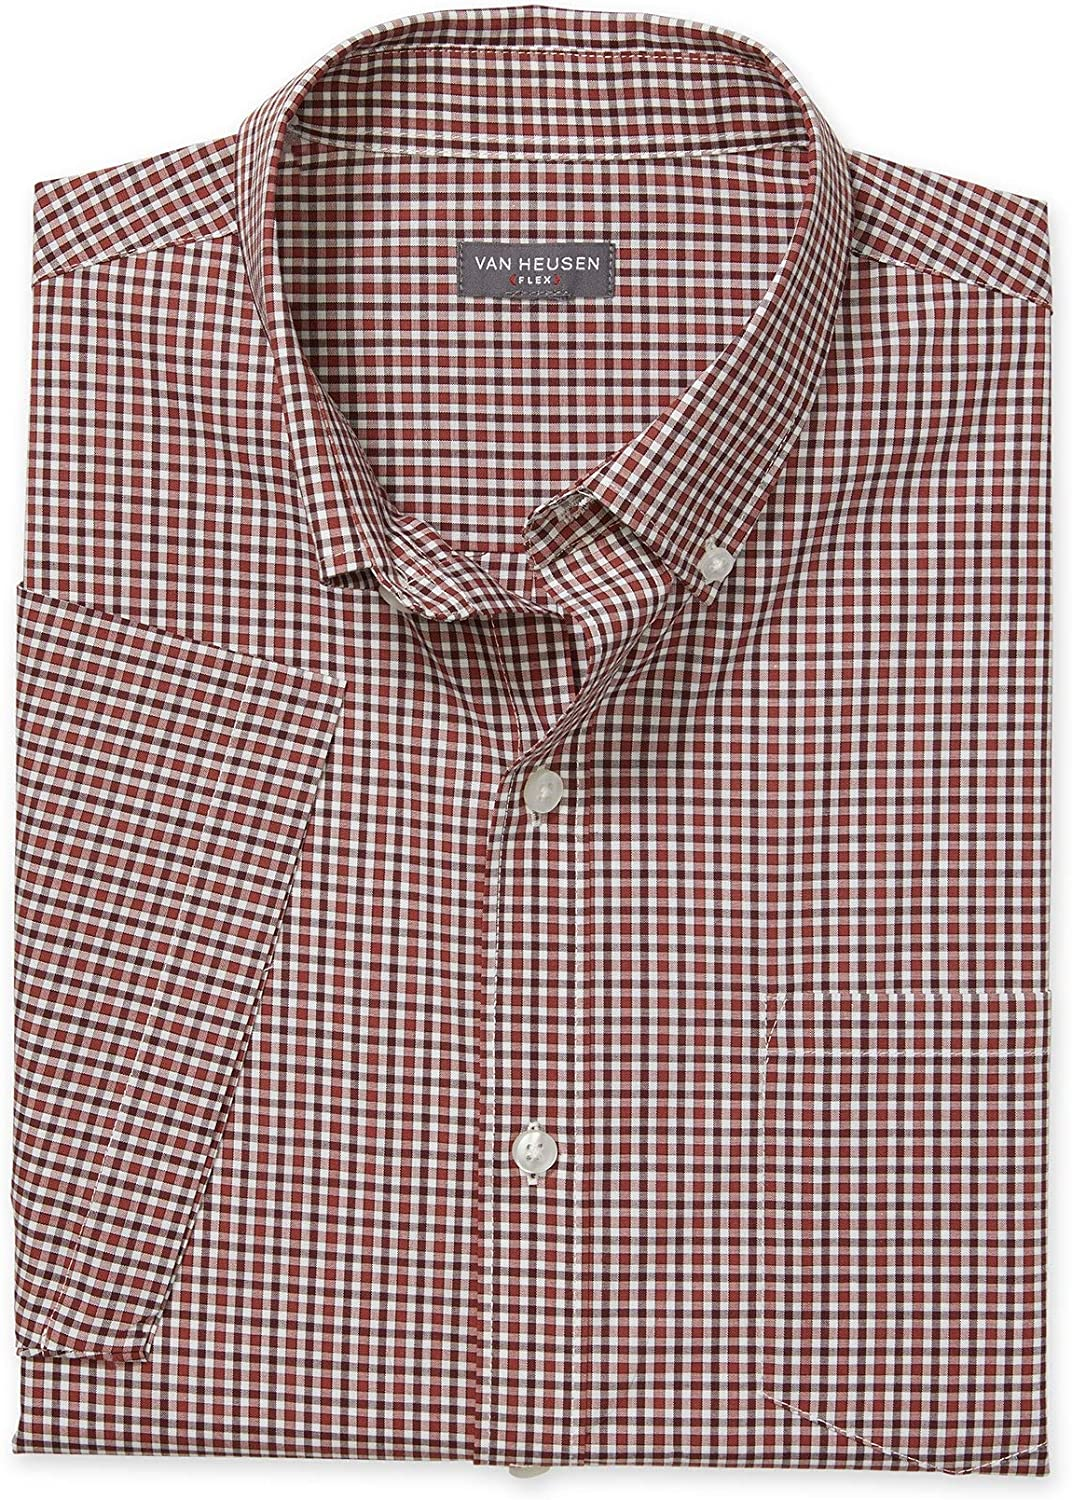 Van Heusen Mens Flex Short Sleeve Button Down Check Shirt